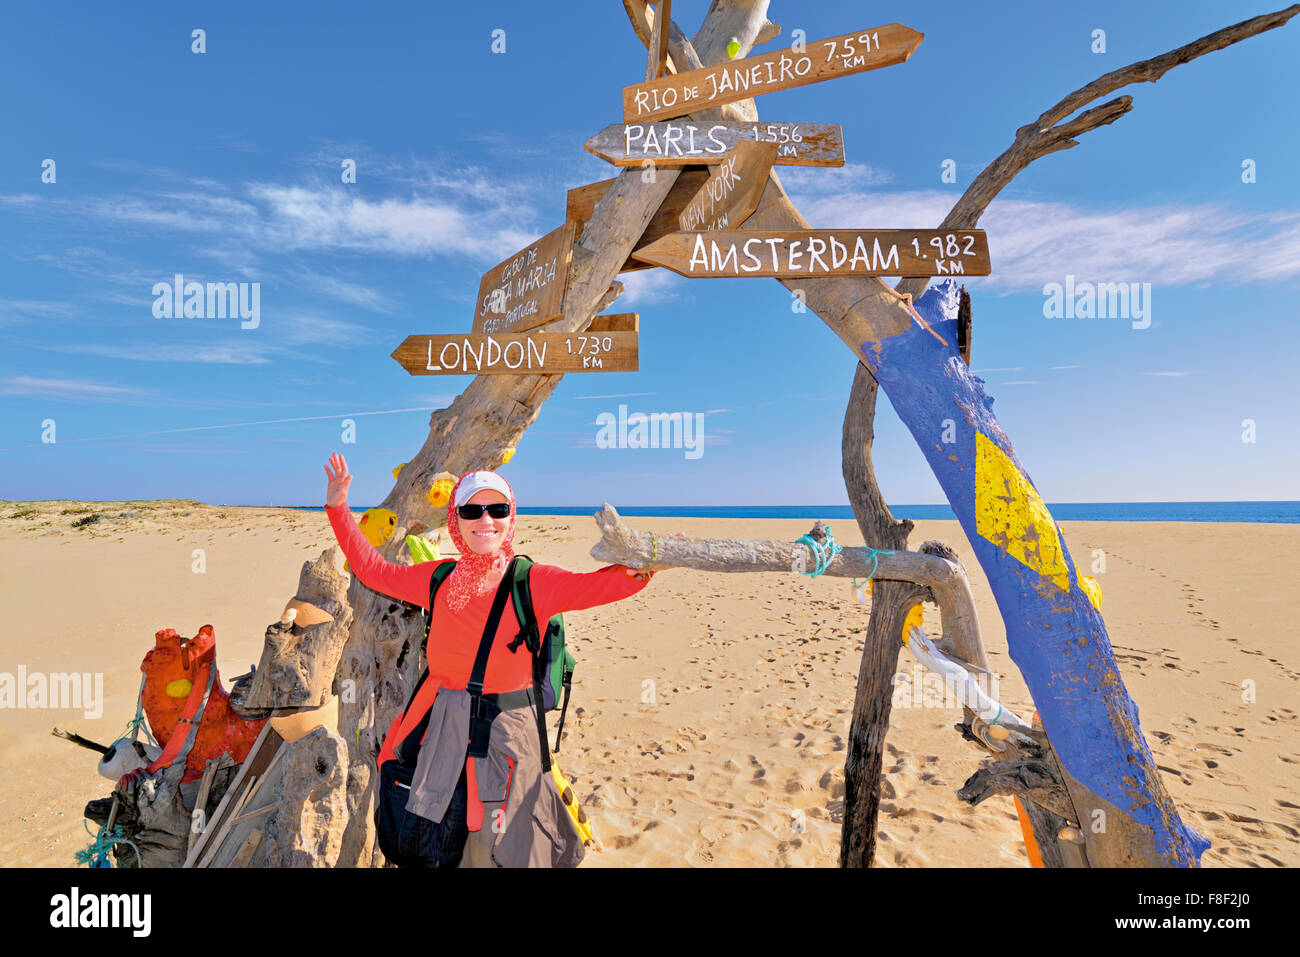 Portugal, Faro: Woman posing with open arms at signal tree in Desert Island - Stock Image